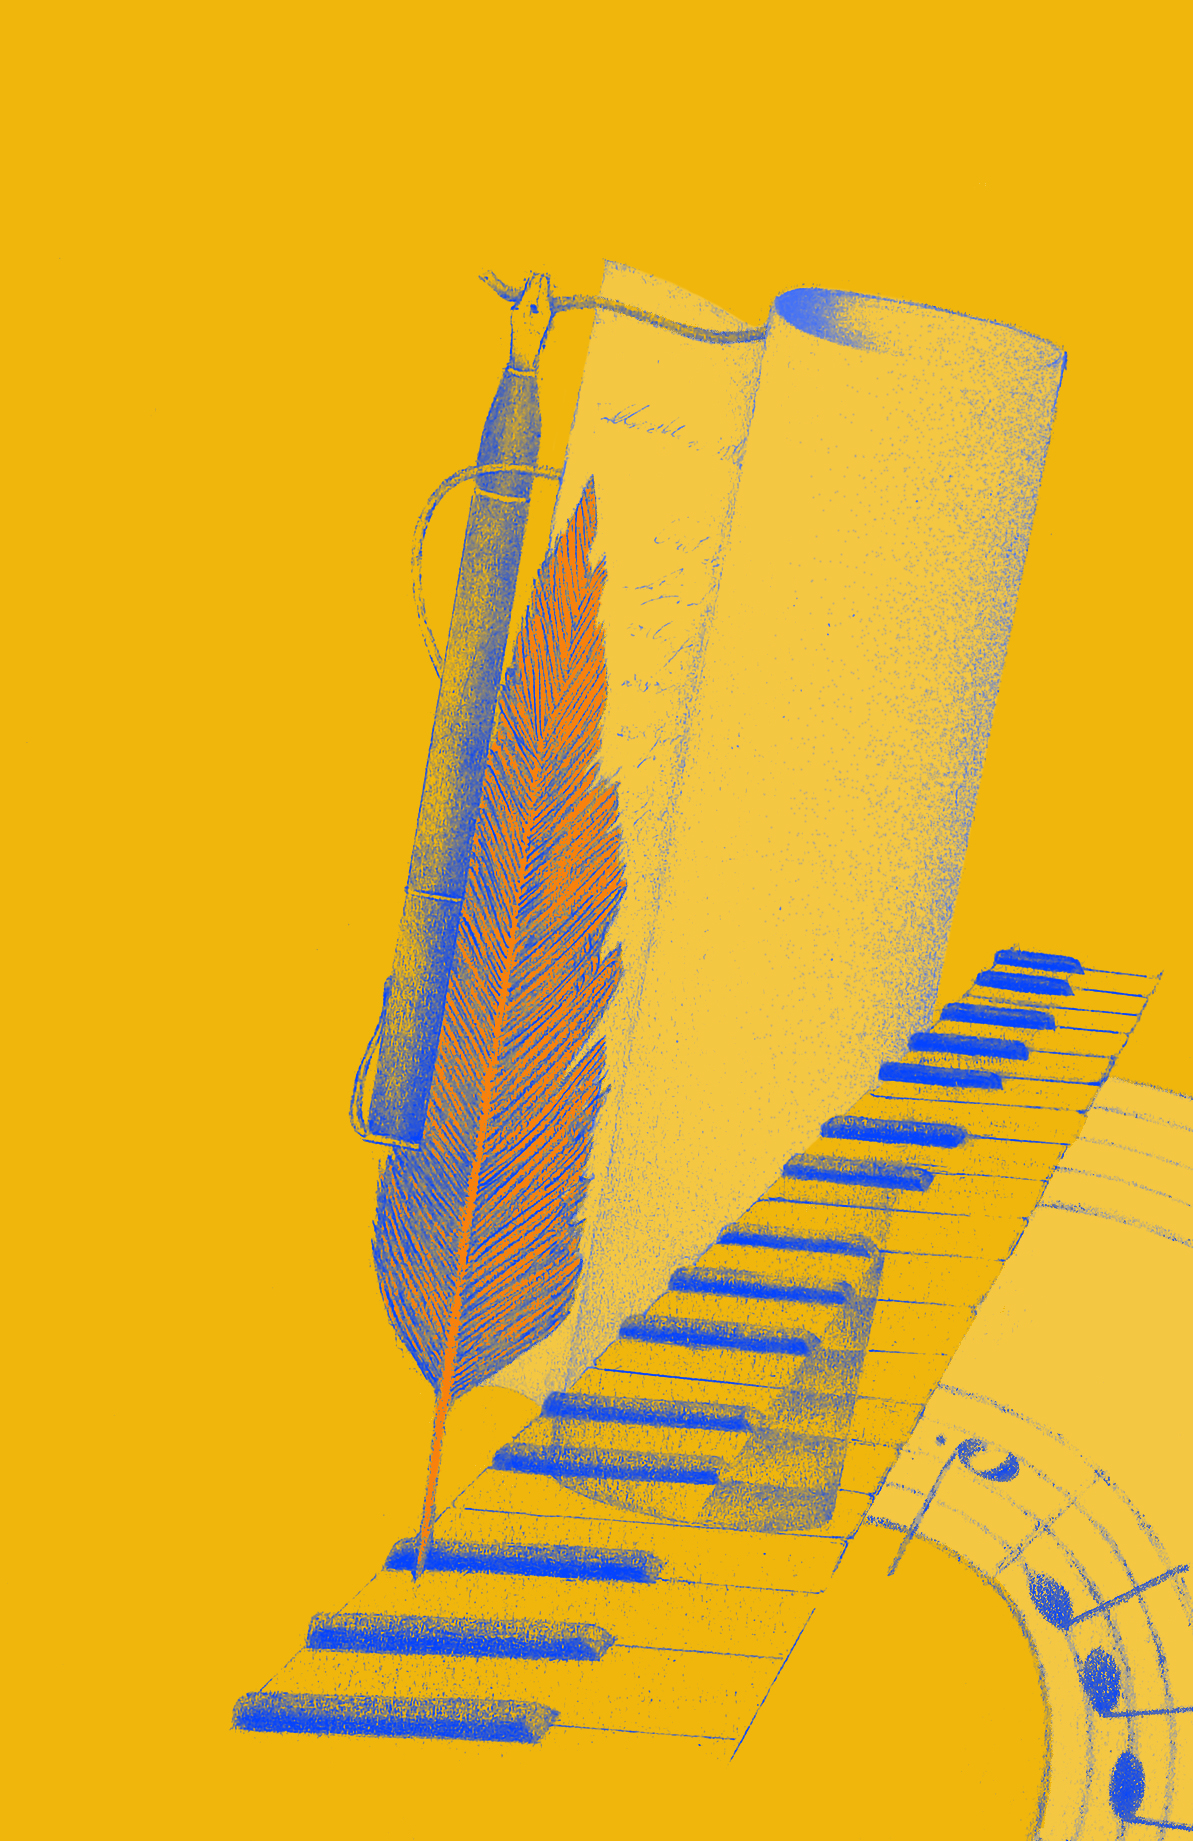 yellow and blue graphic of a keyboard, pen, and paper